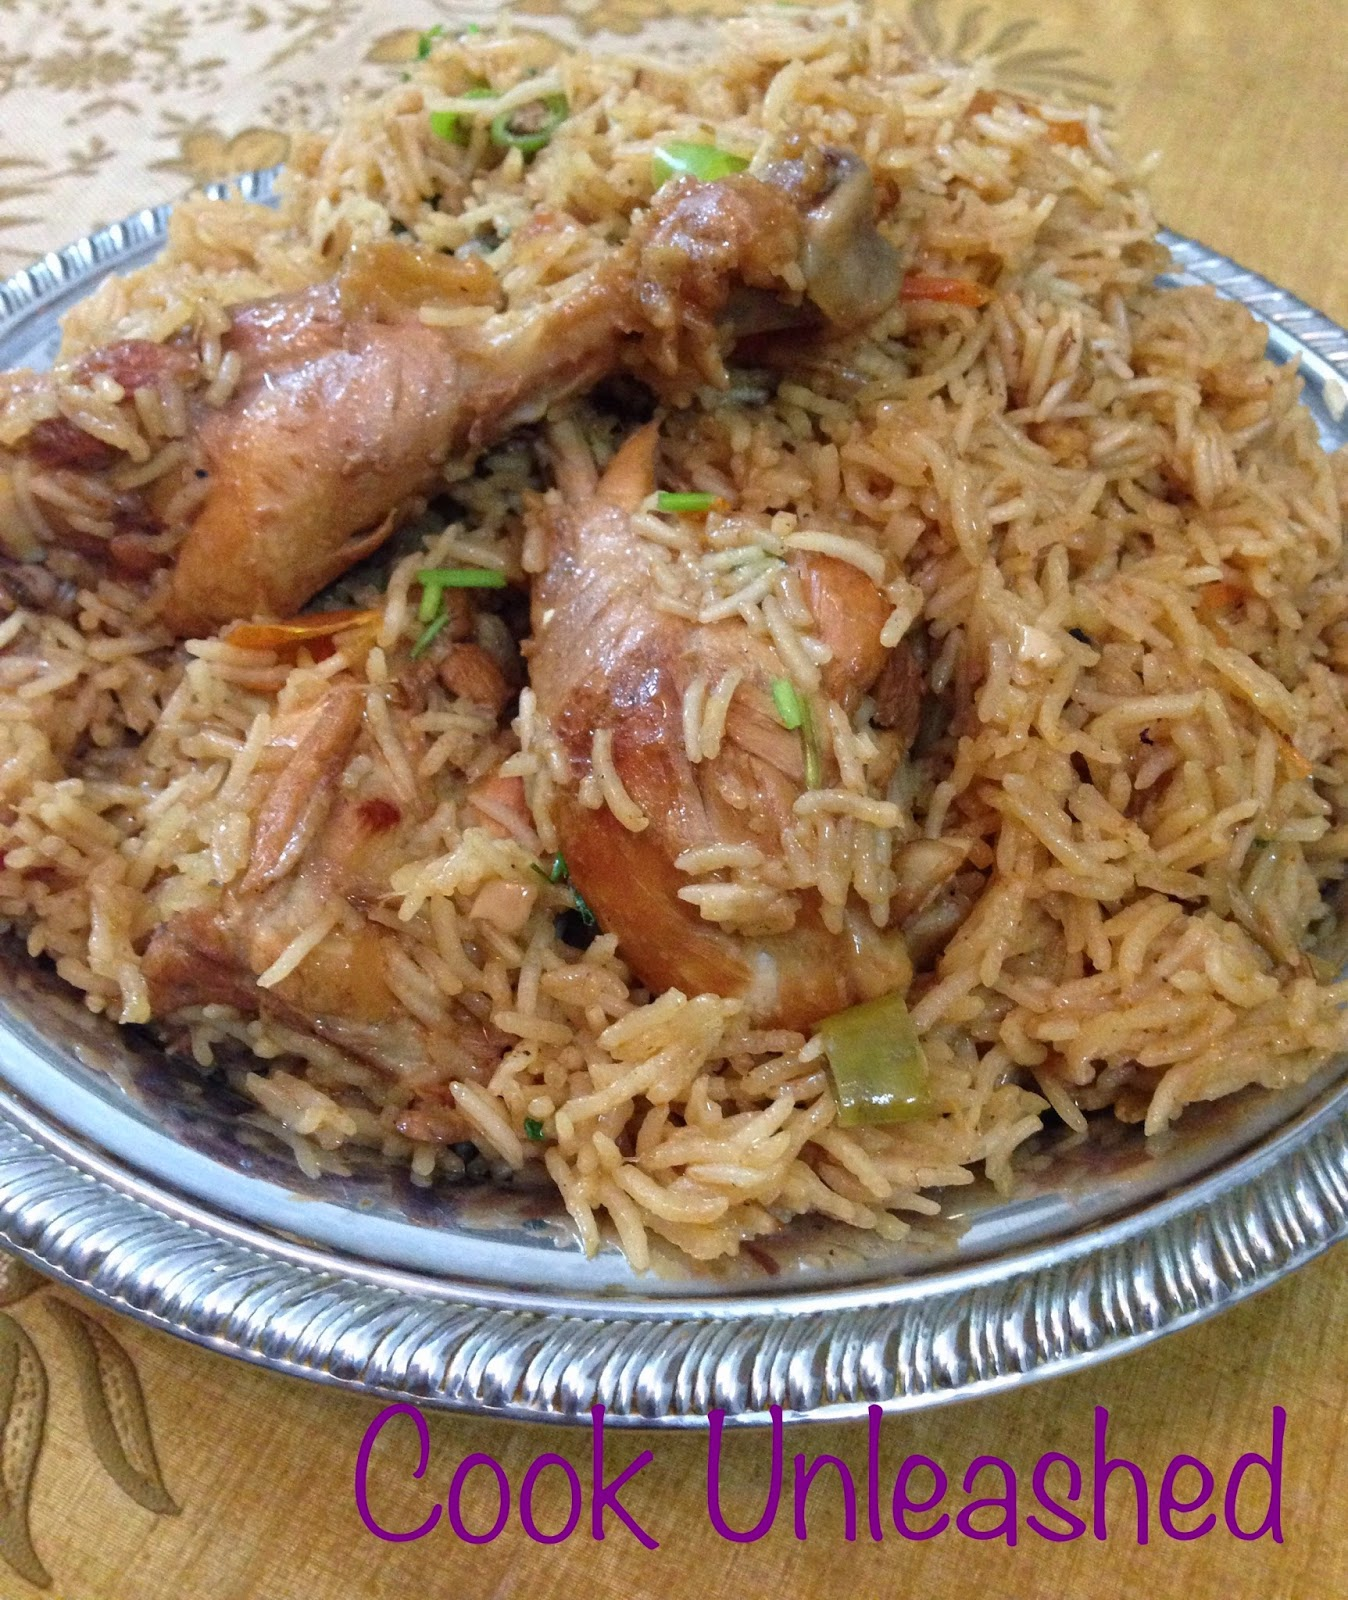 Watch How to Make Pakistani Pulao (Chicken and Rice Dish) video